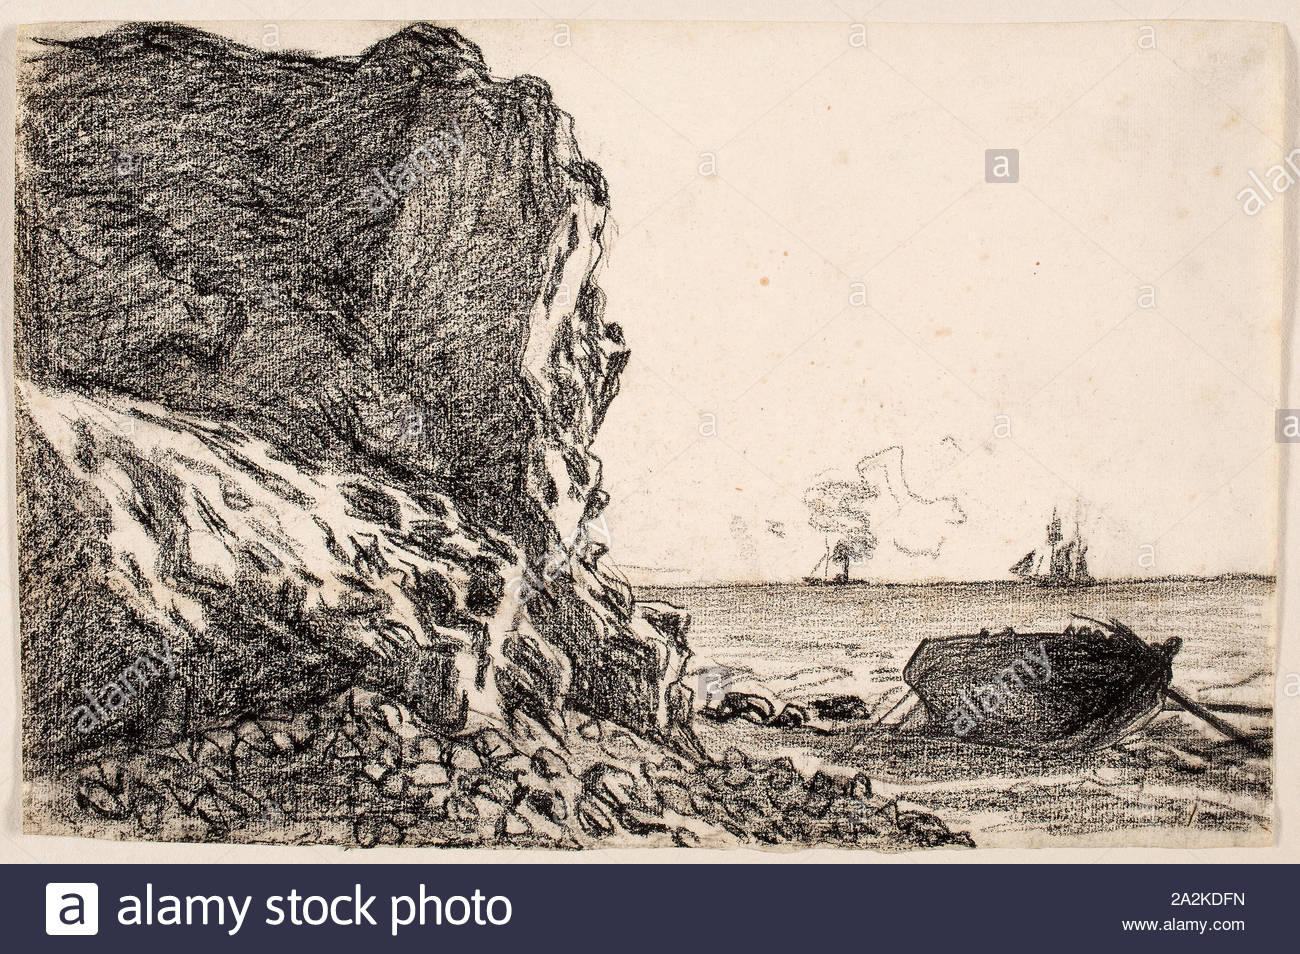 cliffs and sea sainte adresse c 1864 claude monet french 1840 1926 france black chalk on ivory laid paper 206 314 mm 2A2KDFN